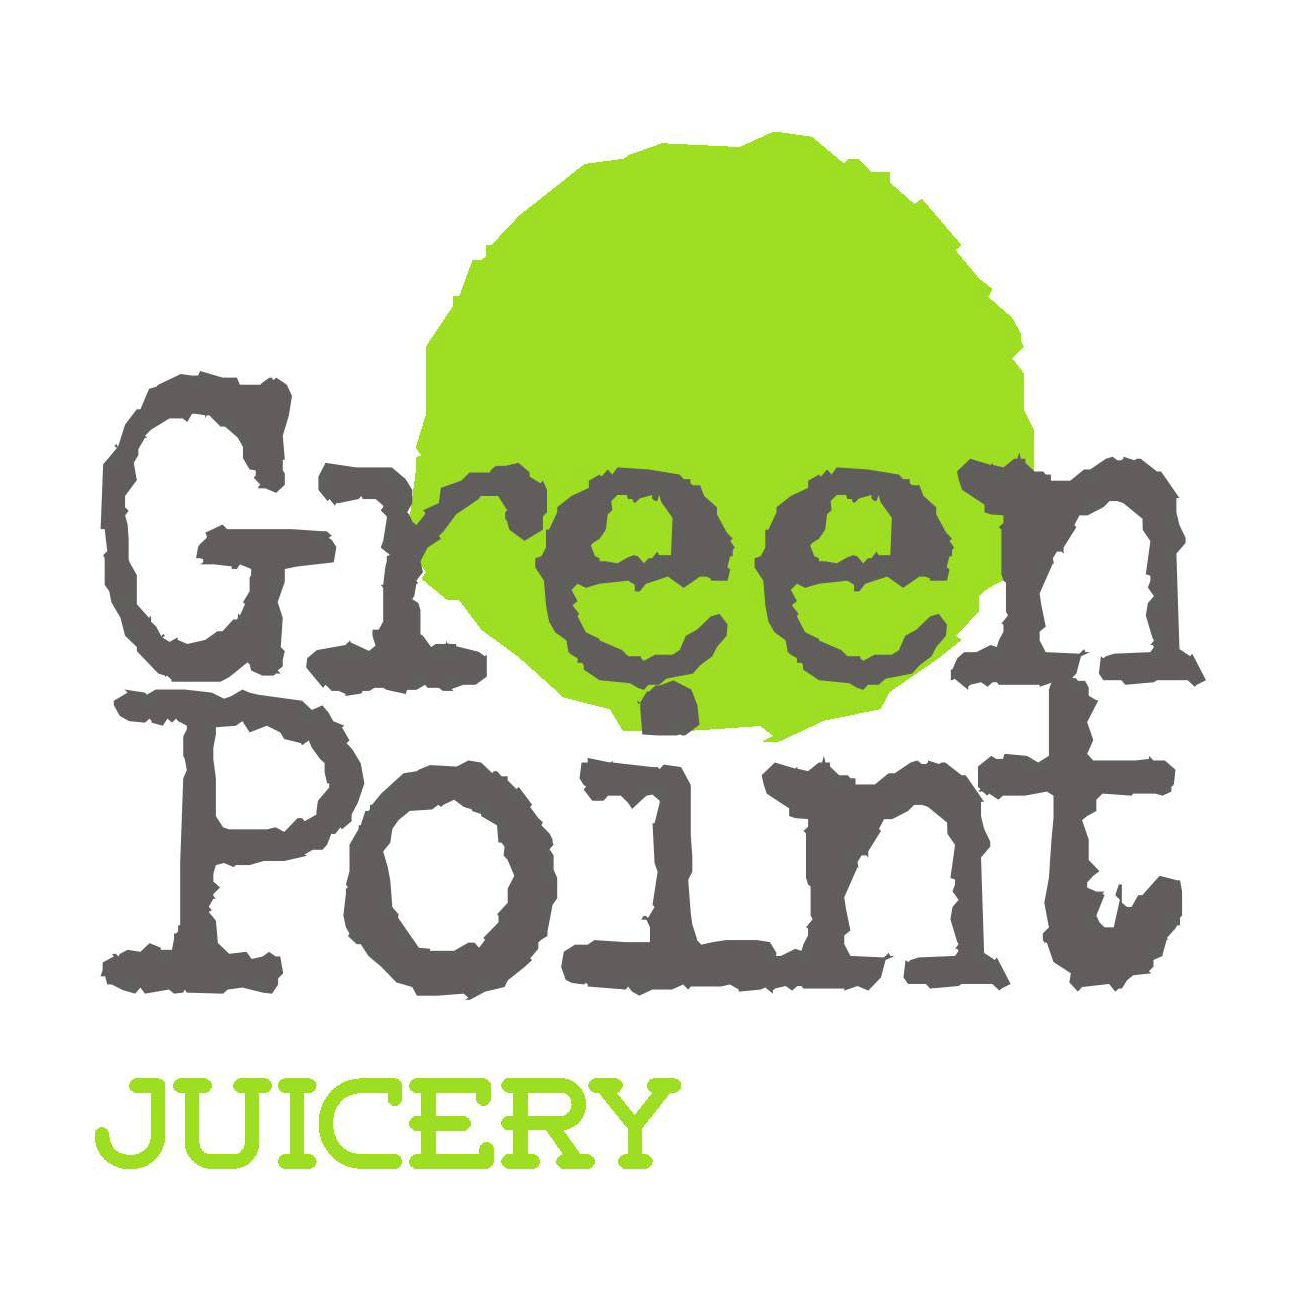 Green Point Juicery, Links to Facebook Page